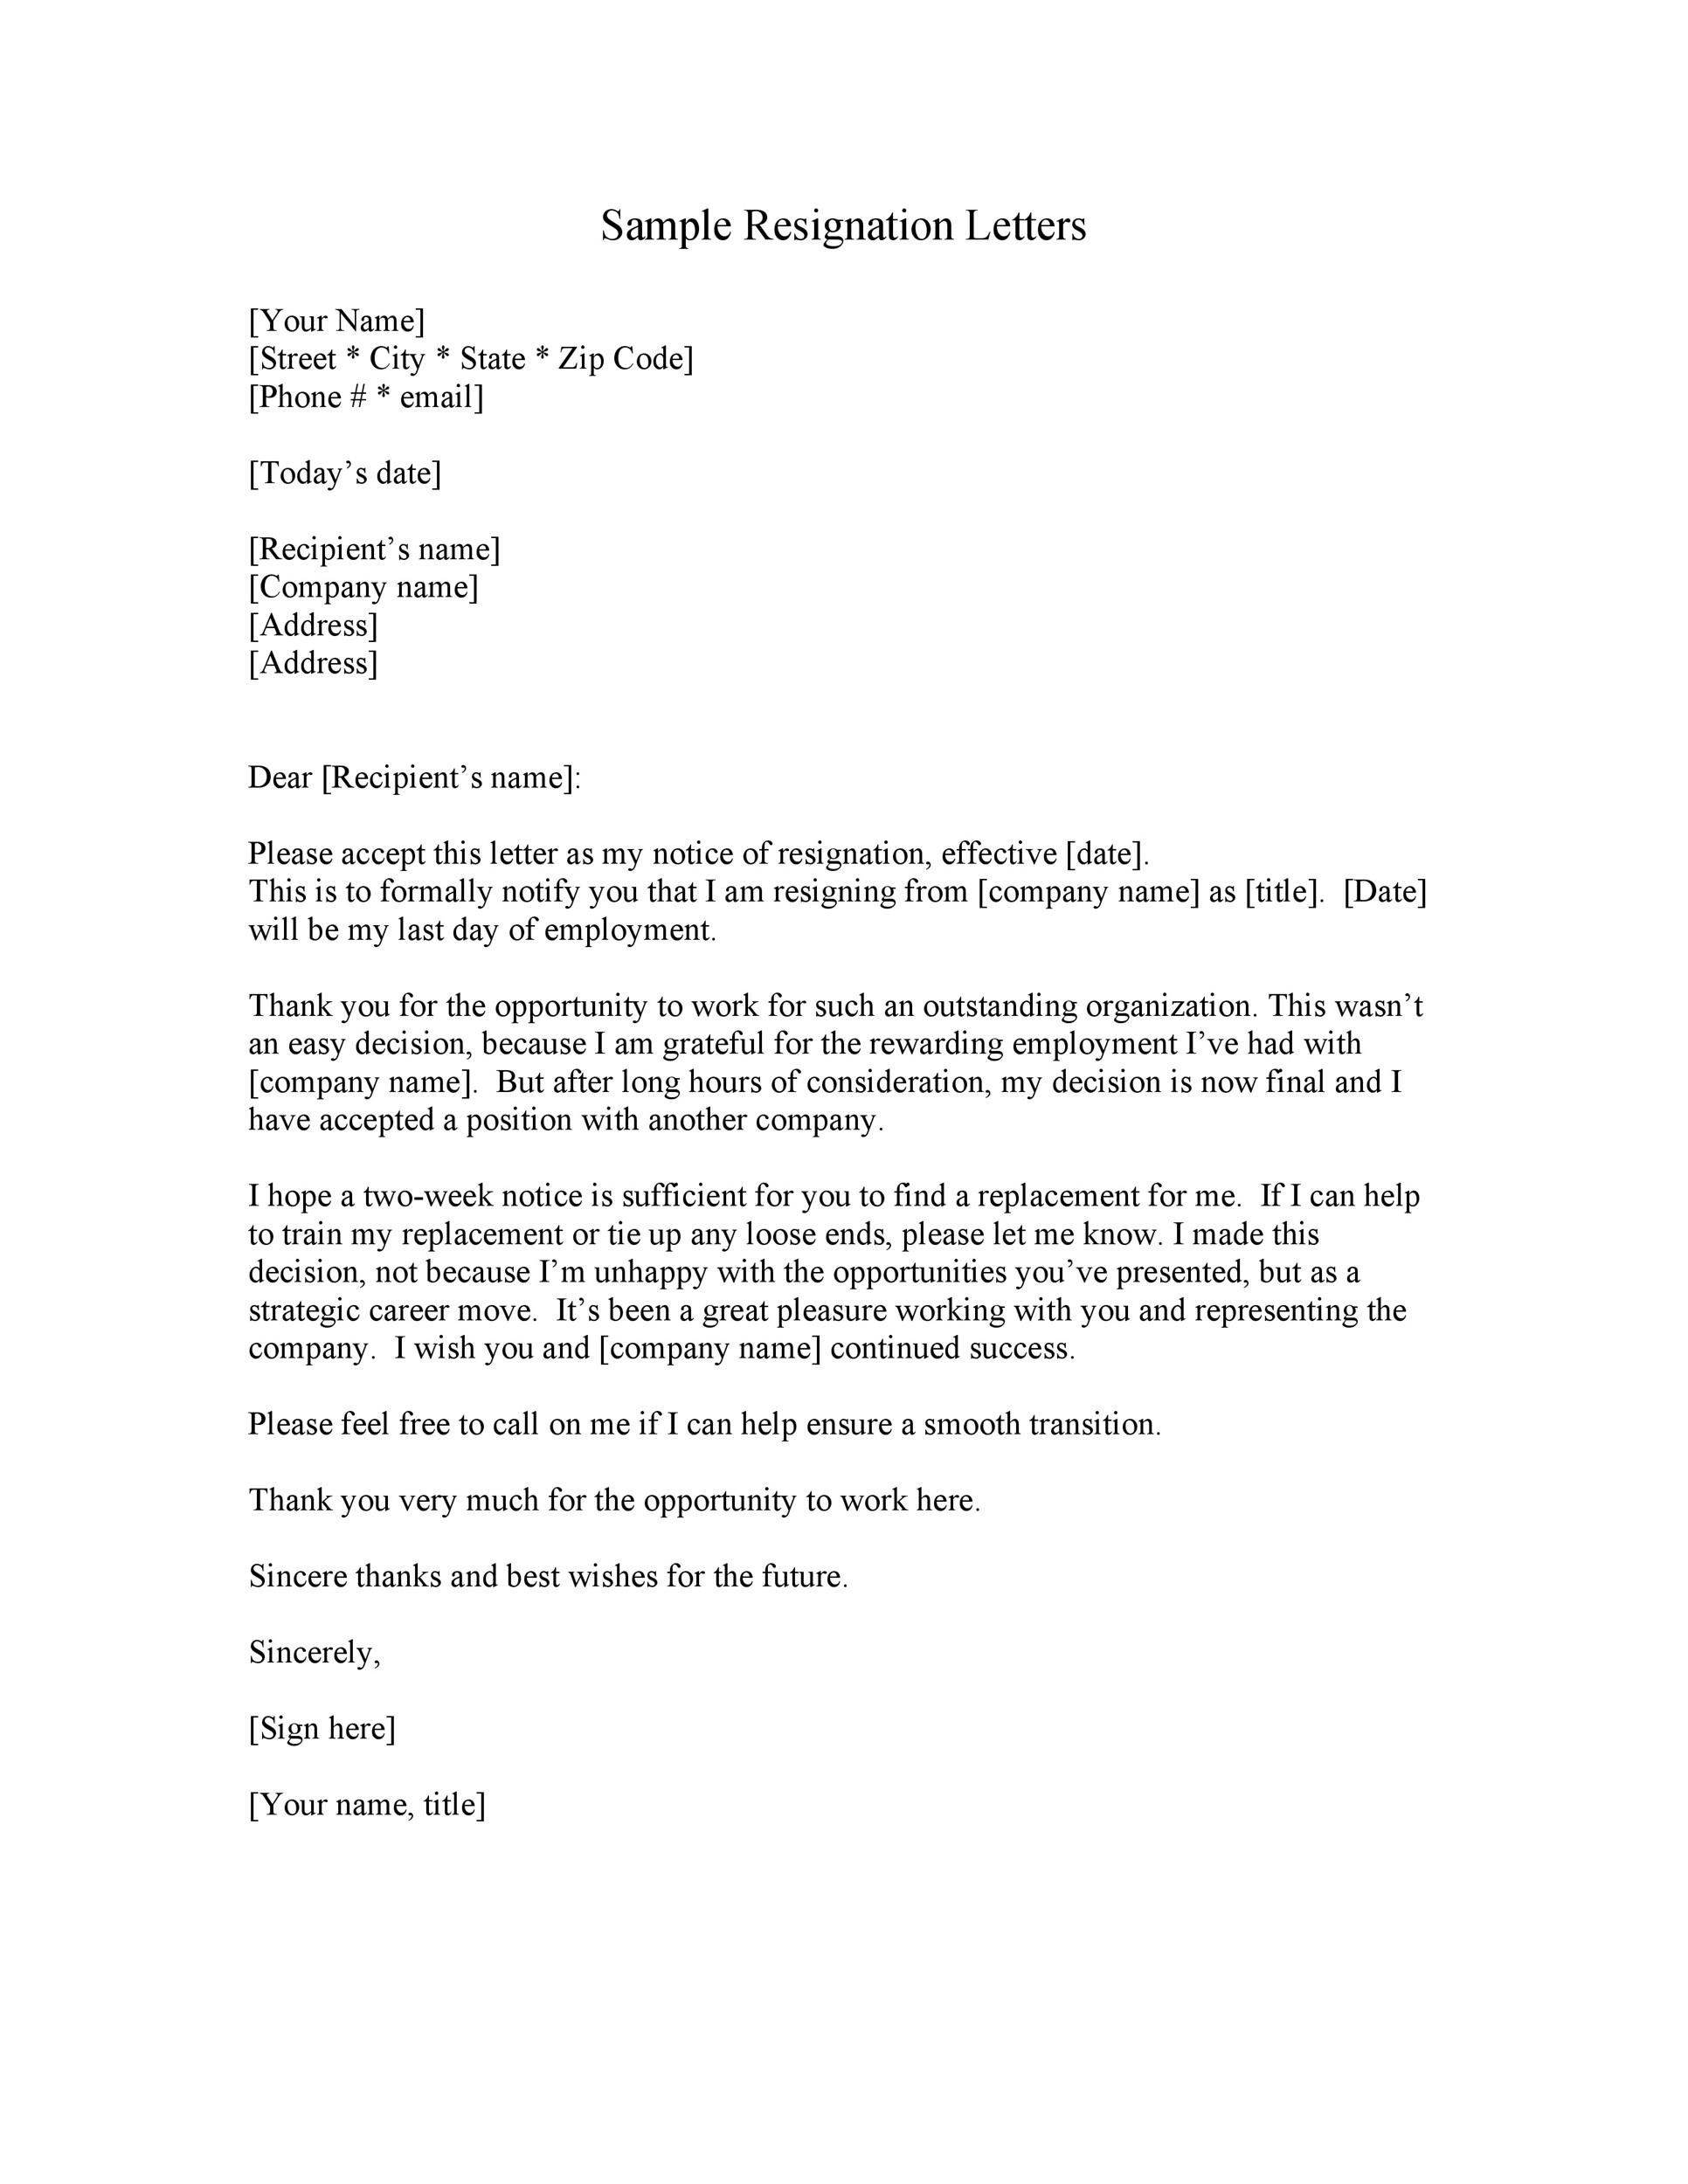 40 Two Weeks Notice Letters  Resignation Letter Templates - example of resignation letters